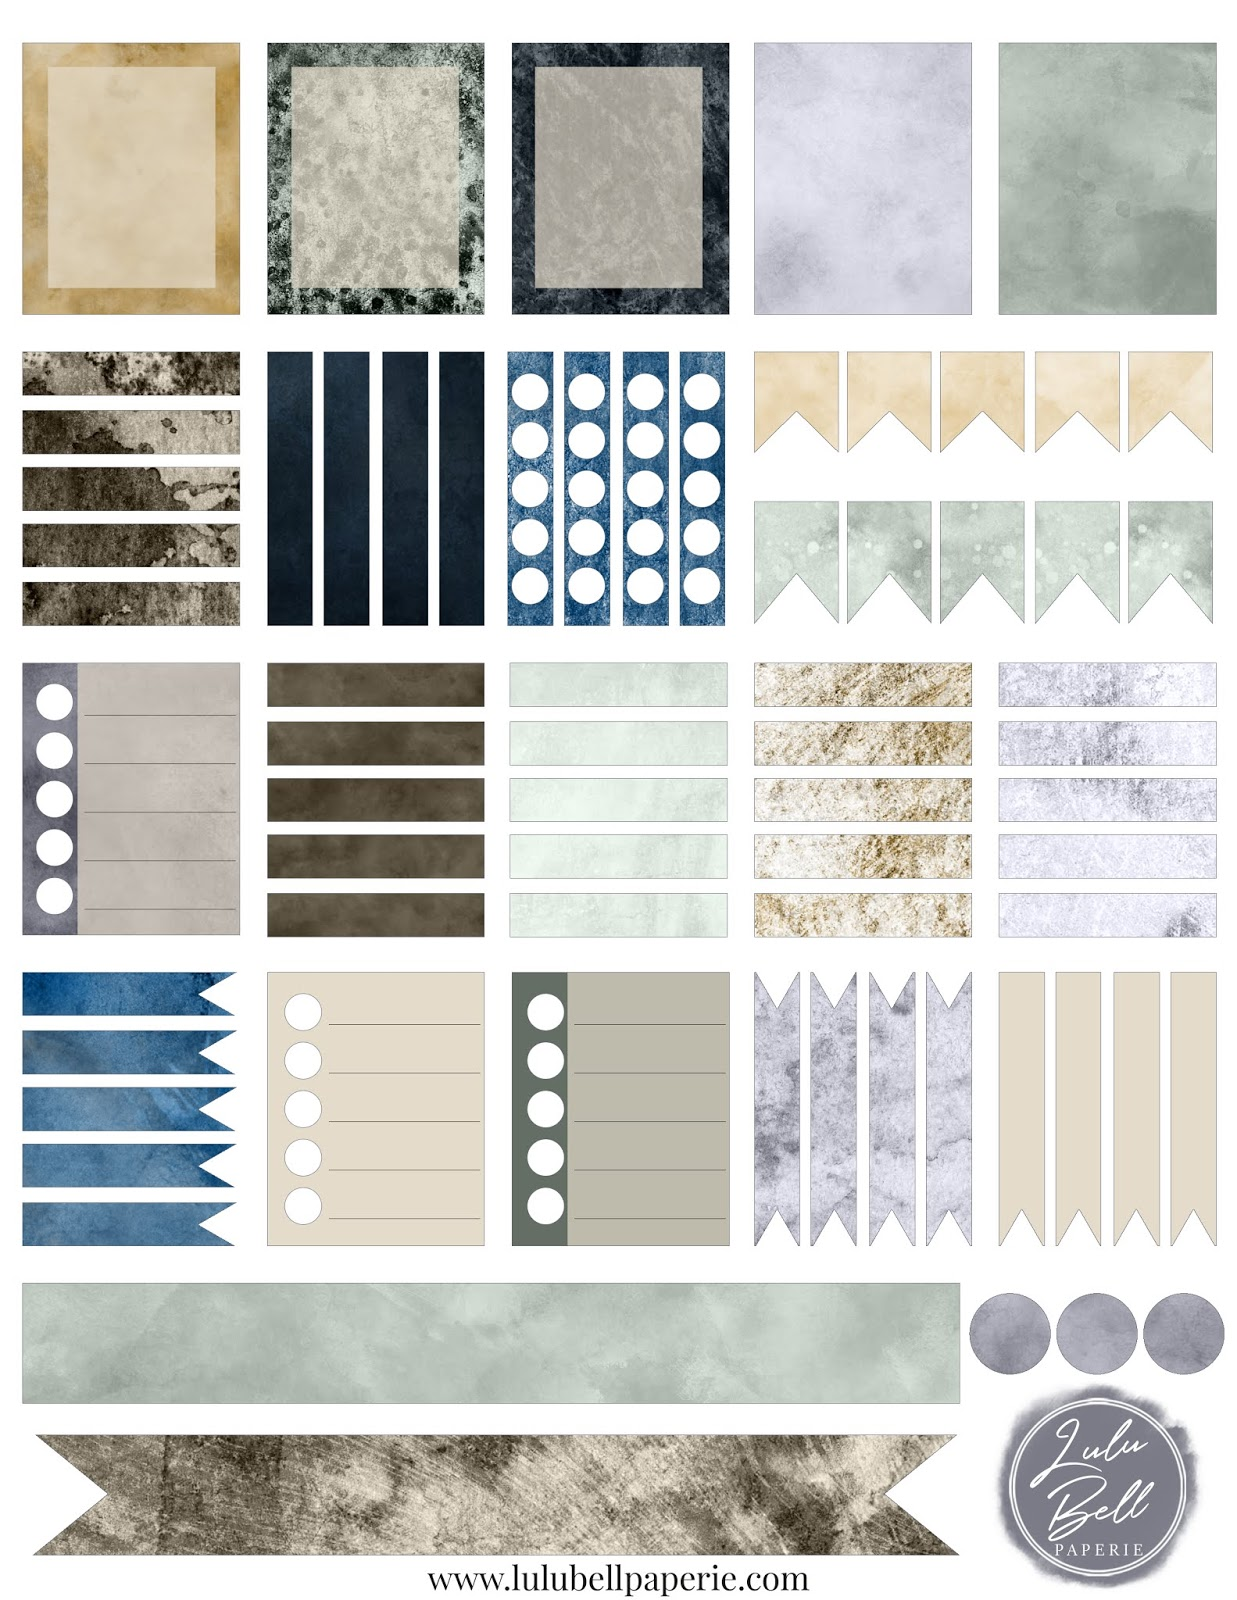 Free Wedding Planner Sticker Sheet Printable - Dusty Blue Yellow and Green Watercolor Textures